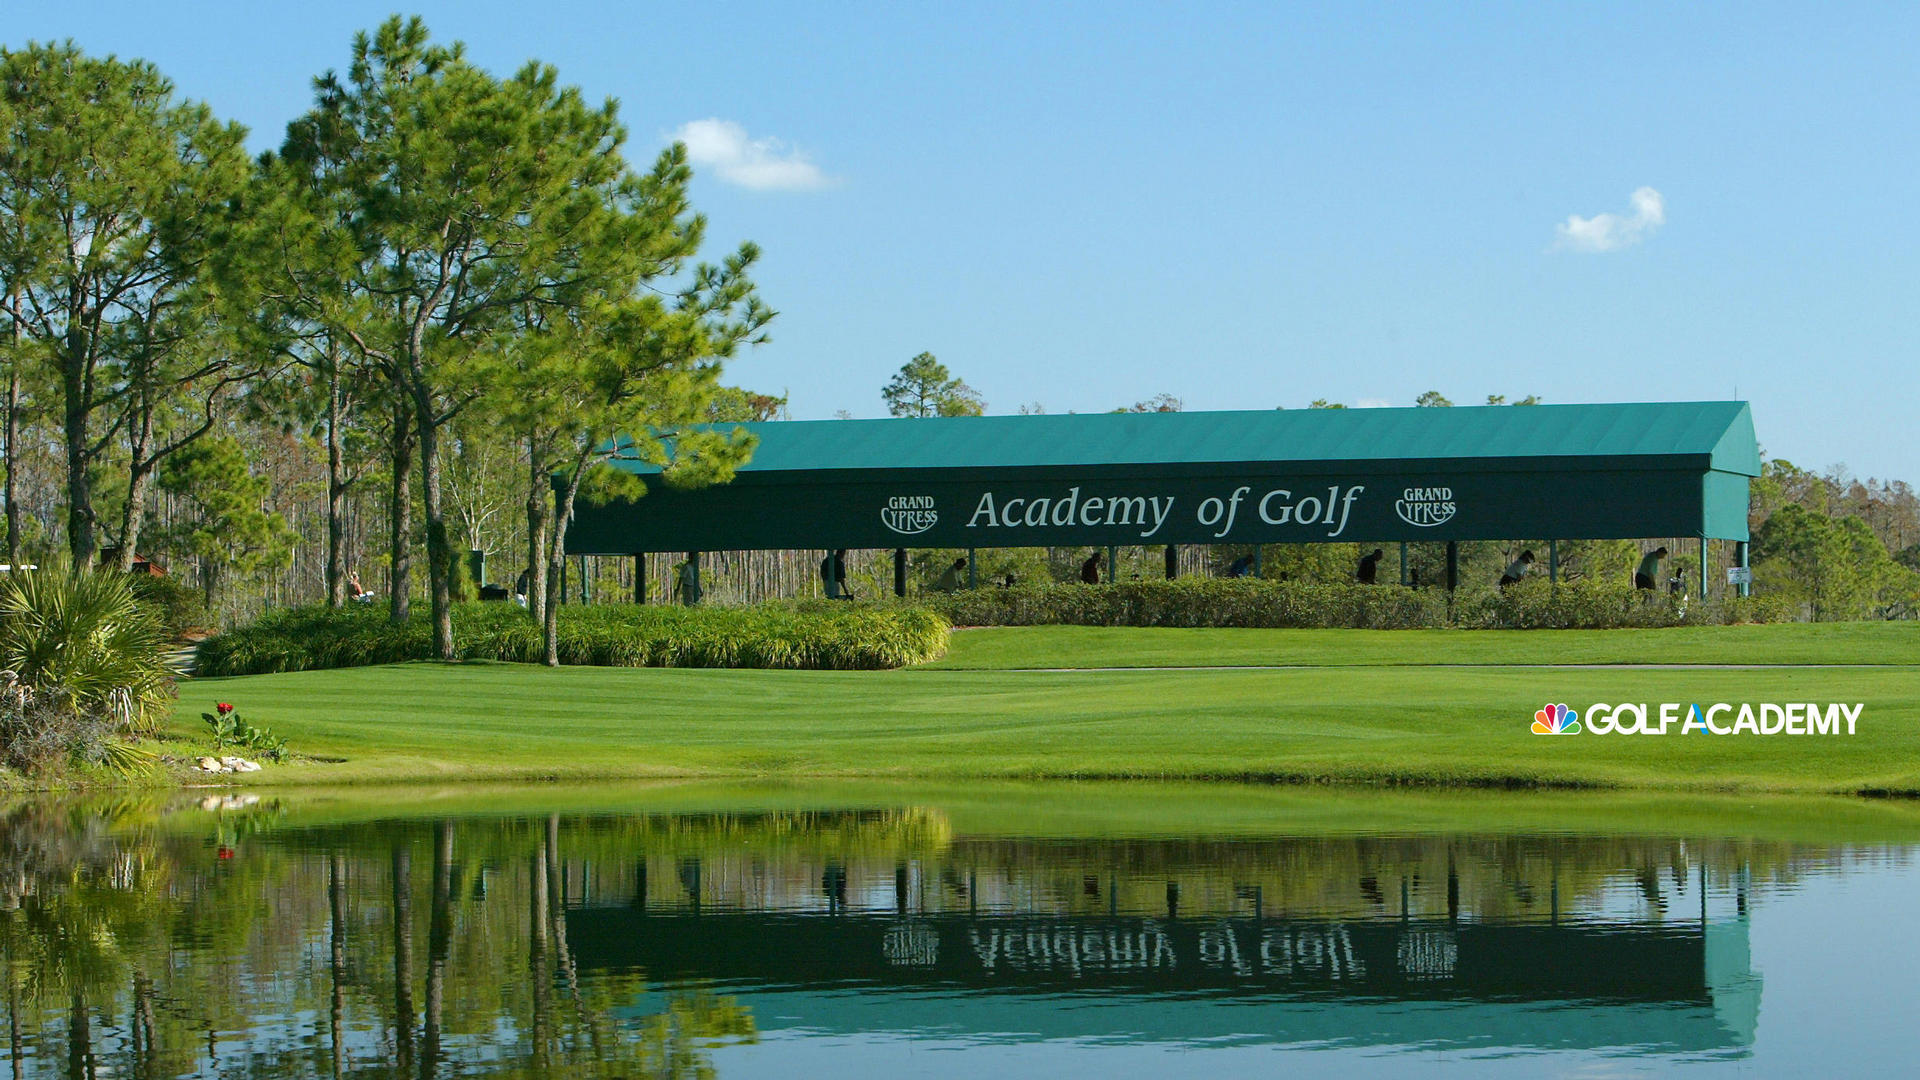 Villas Grand Cypress Golf Academy in Orlando Florida